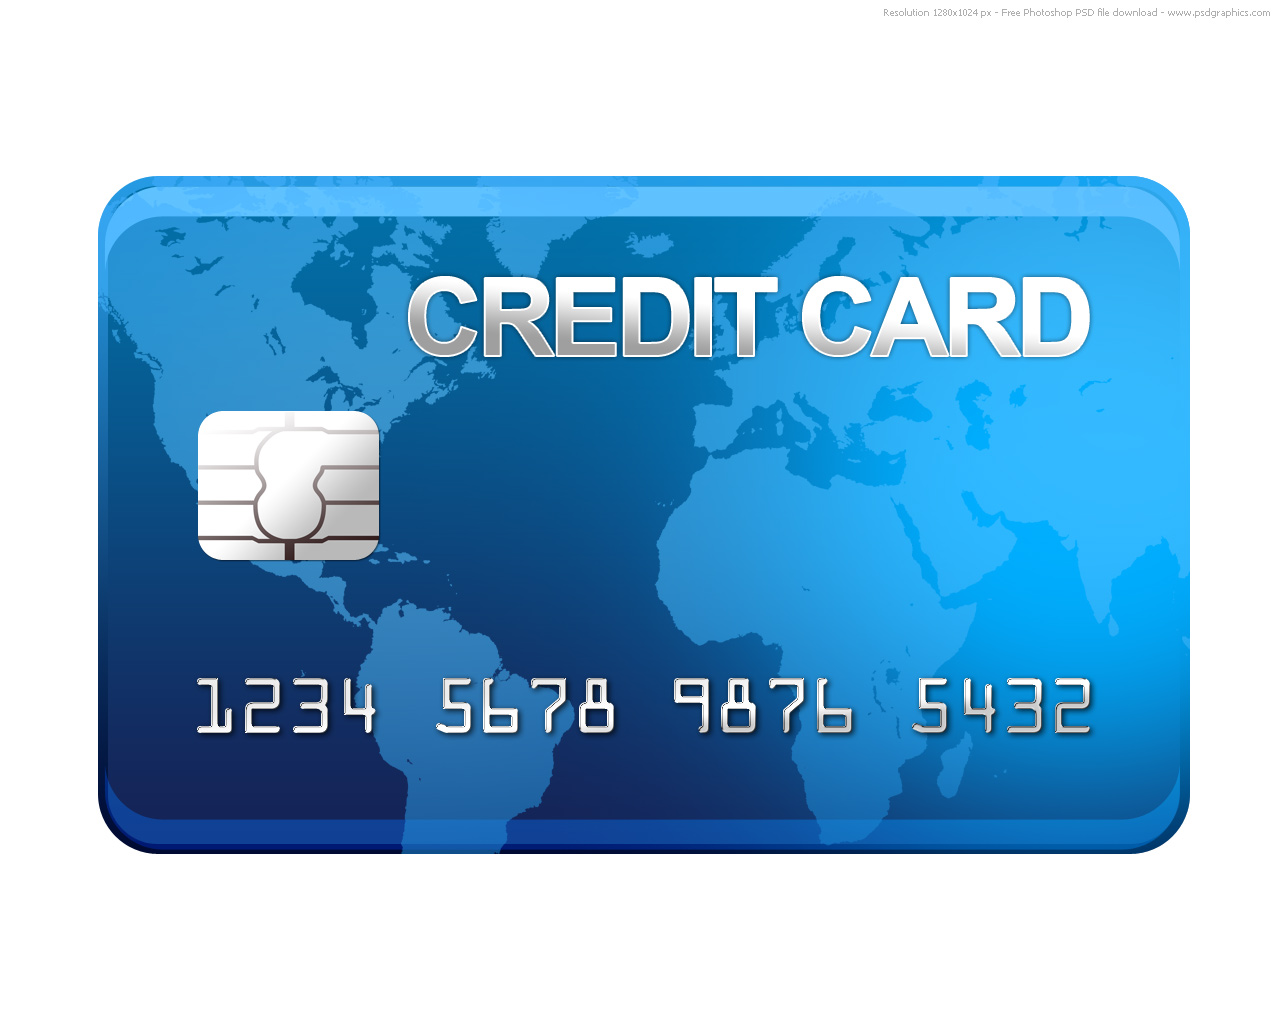 Hdfc bank credit card coupon code for ebay